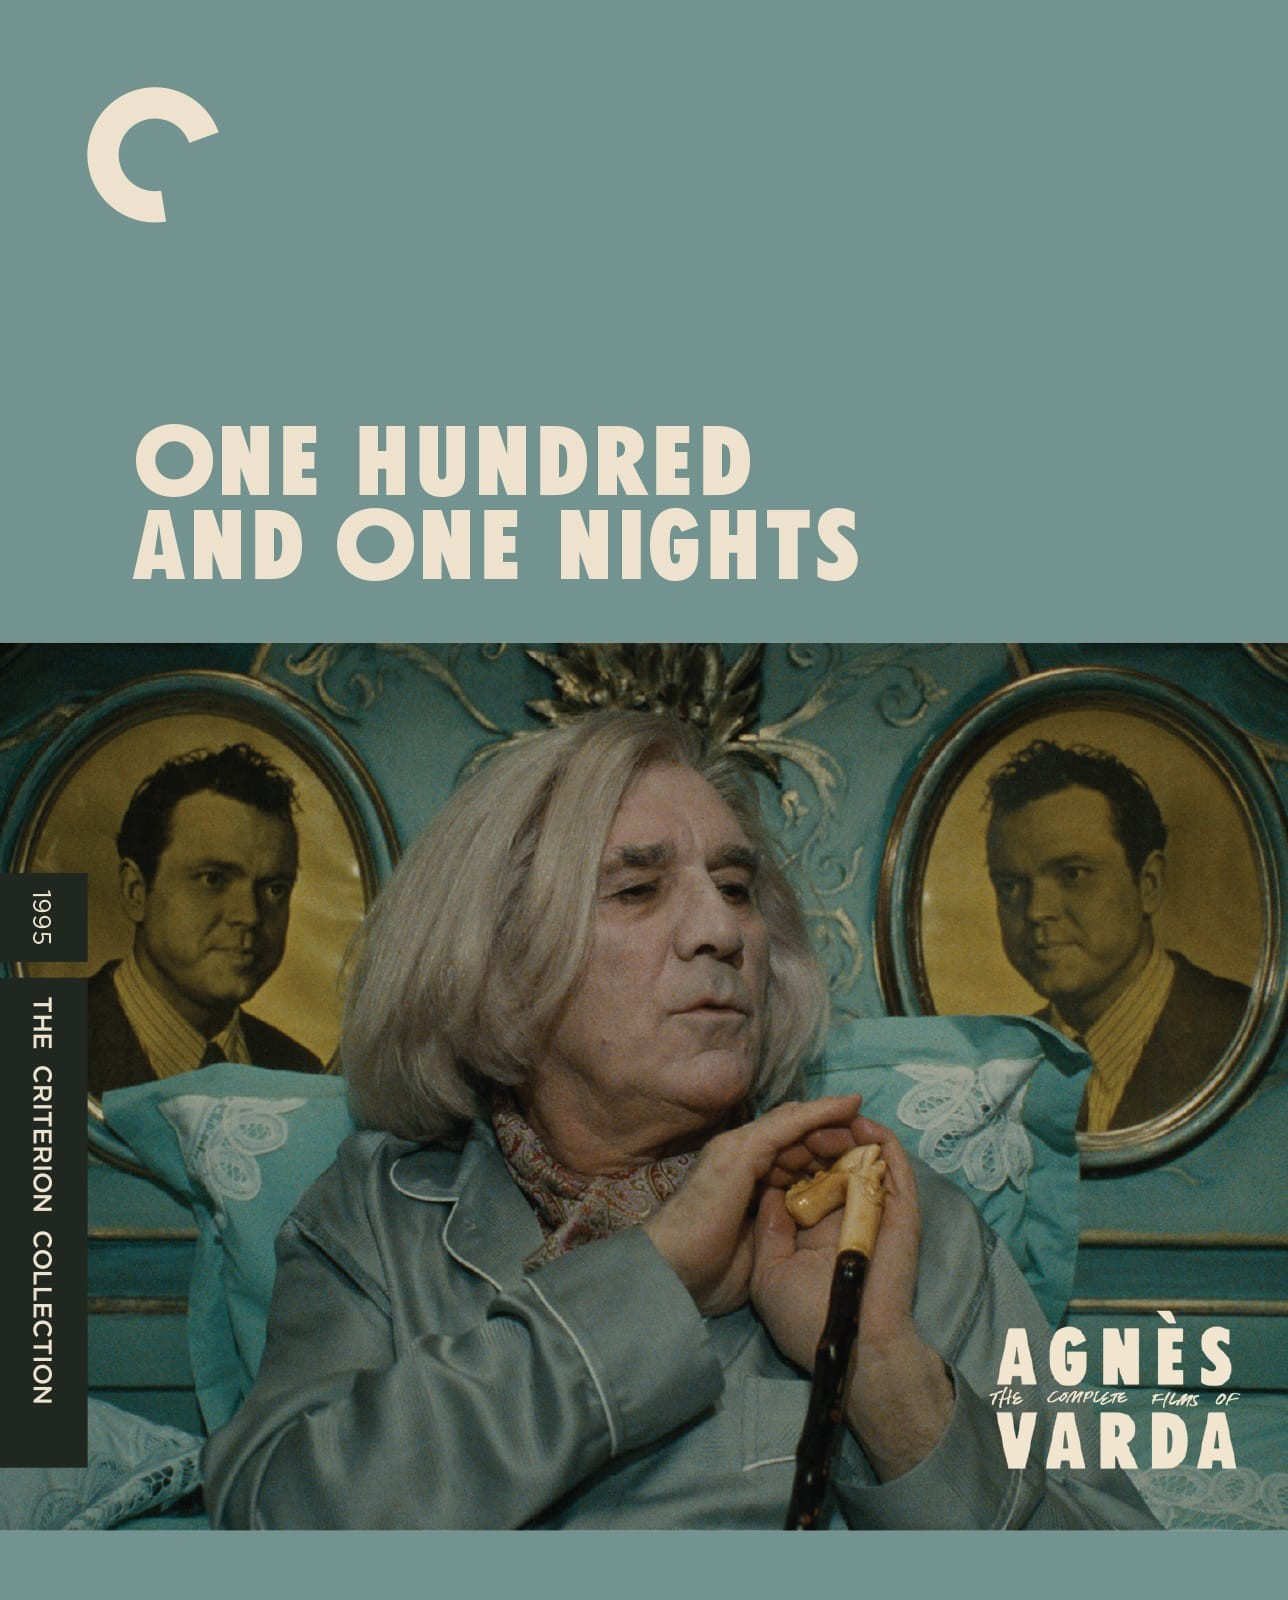 One Hundred and One Nights (1995) | The Criterion Collection